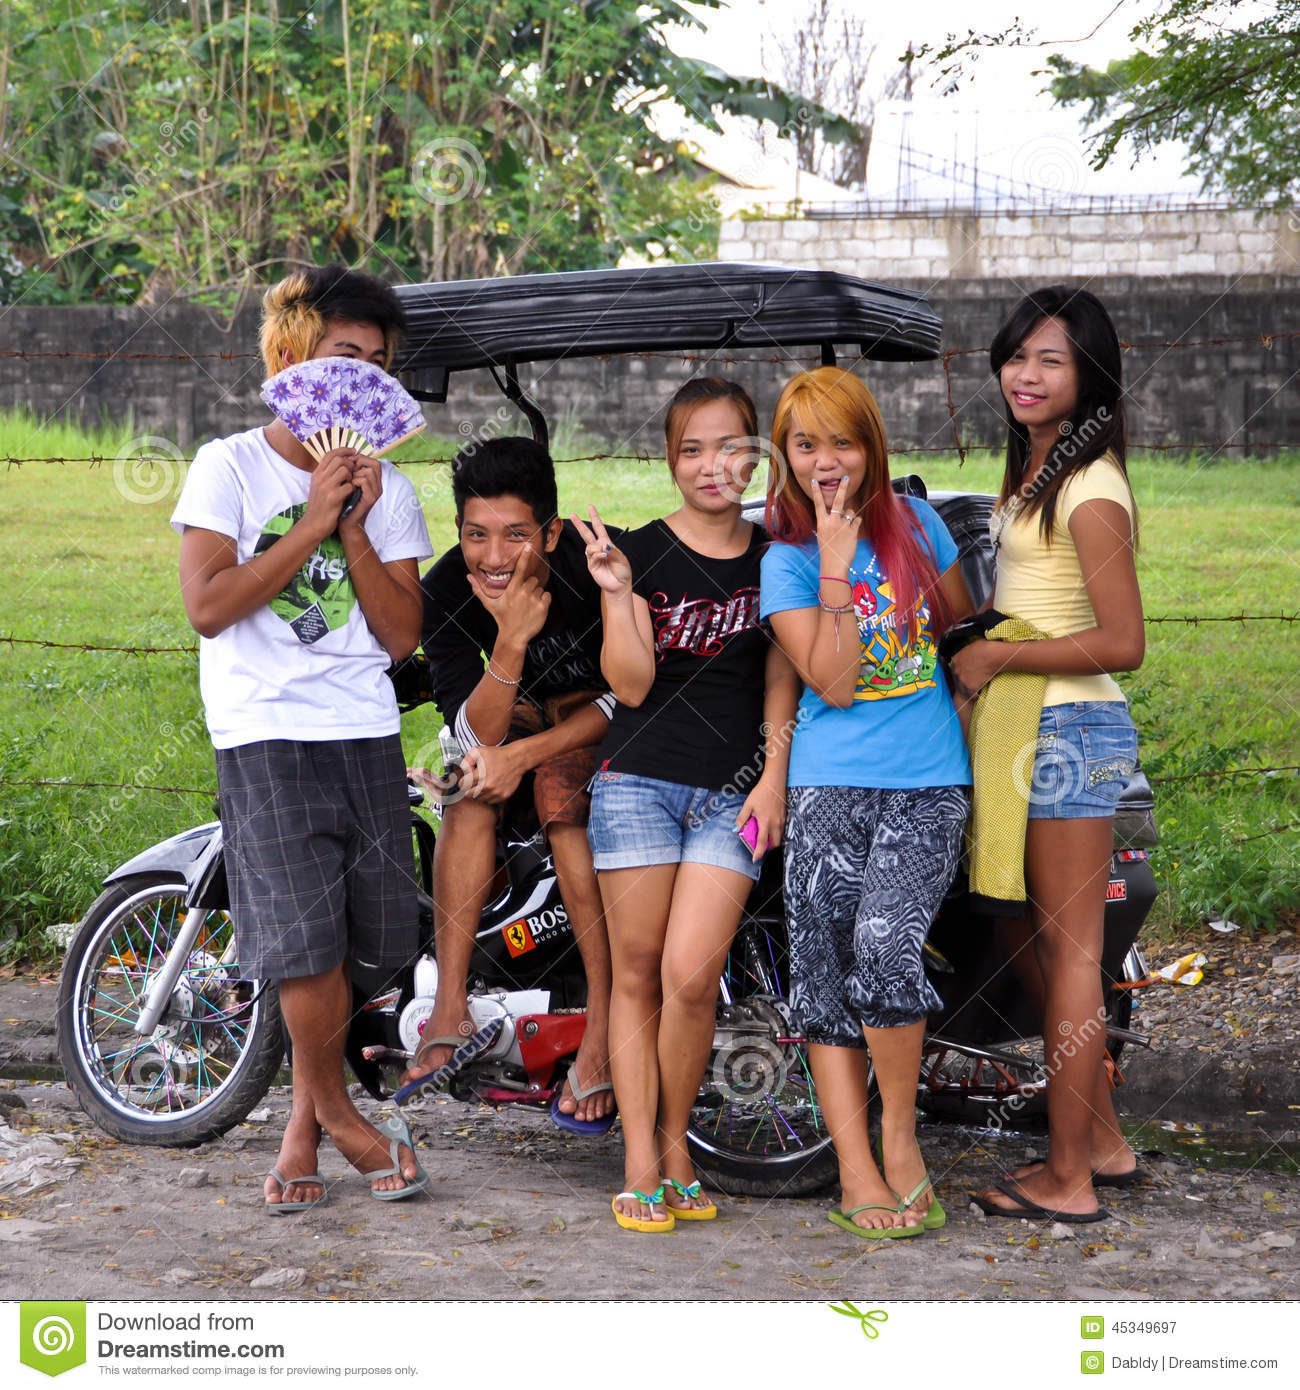 Asian Teenagers Editorial Photography - Image 45349697-5031